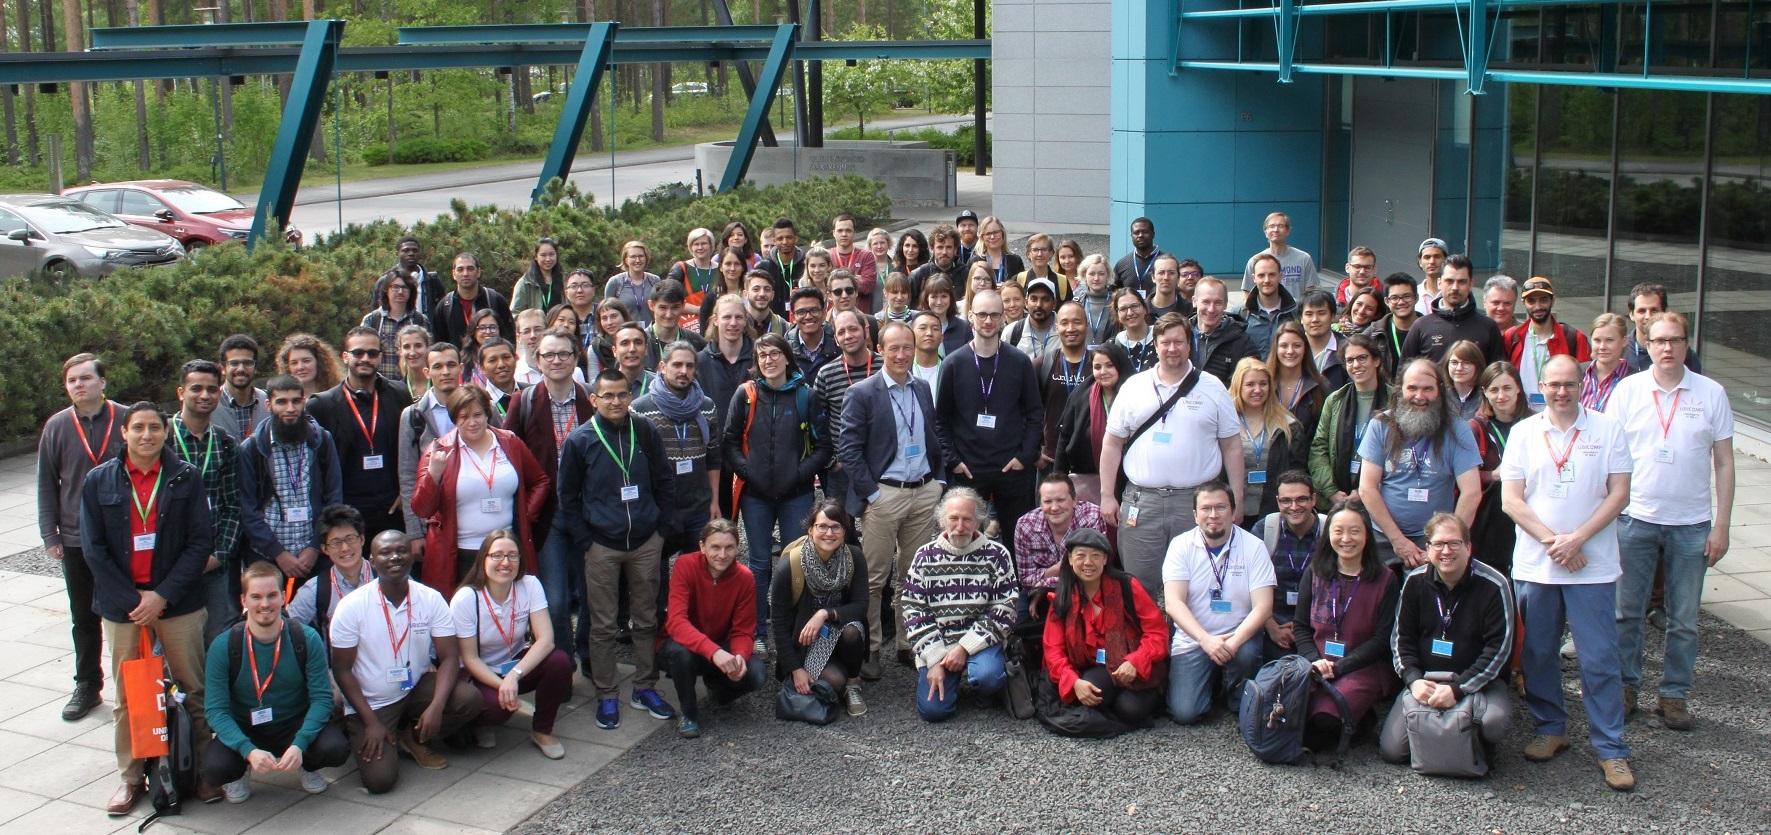 UBISS 2018 enrolled 82 students from 15 countries in 4 parallel workshops